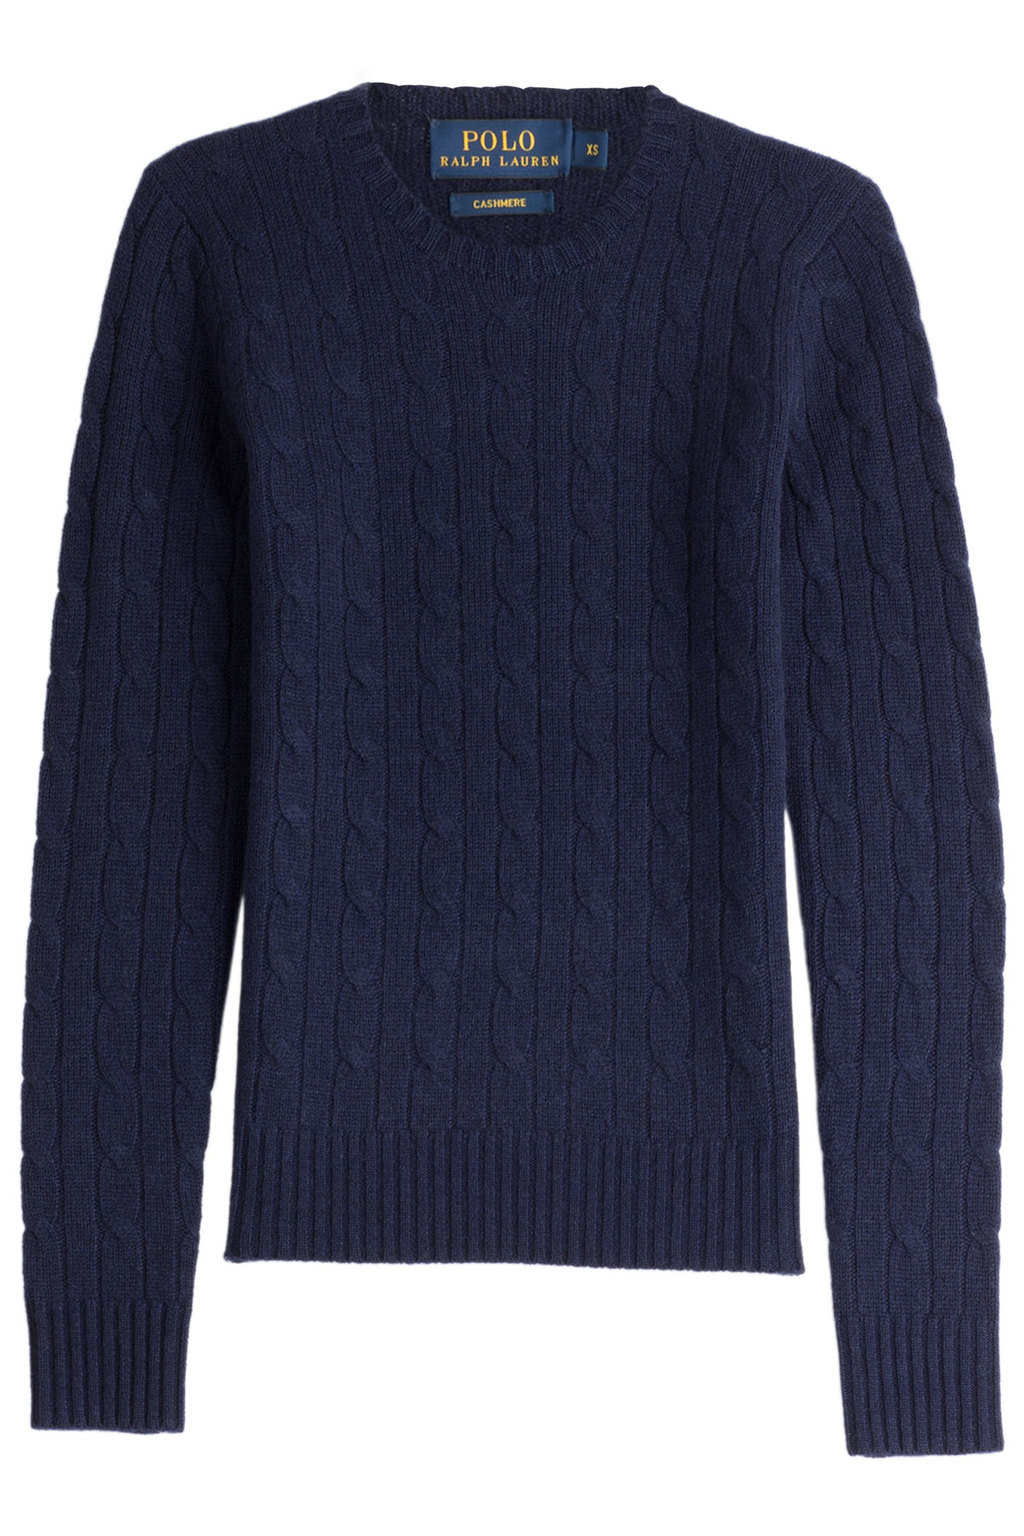 Cashmere Cable Knit Pullover - style: standard; pattern: cable knit; predominant colour: navy; occasions: casual; length: standard; fit: slim fit; neckline: crew; fibres: cashmere - 100%; sleeve length: long sleeve; sleeve style: standard; texture group: knits/crochet; bust detail: bulky details at bust; pattern type: fabric; season: s/s 2016; wardrobe: highlight